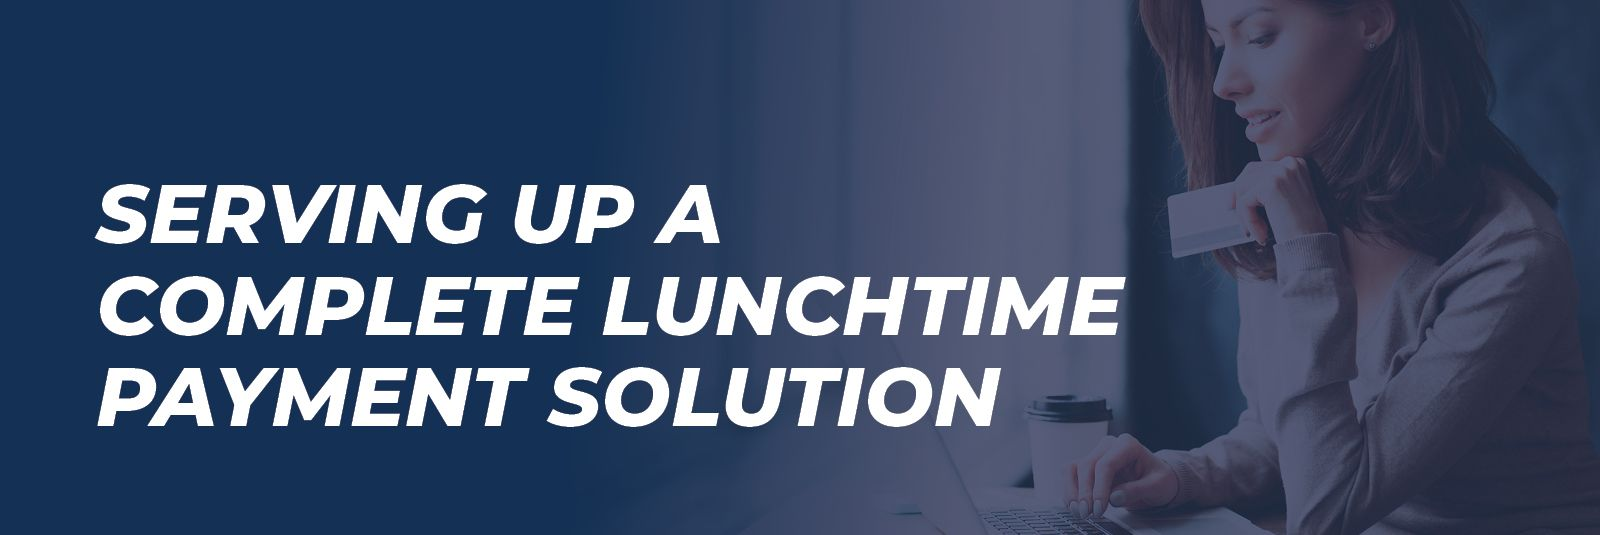 Serving Up a Complete Lunchtime Payment Solution with RevTrak